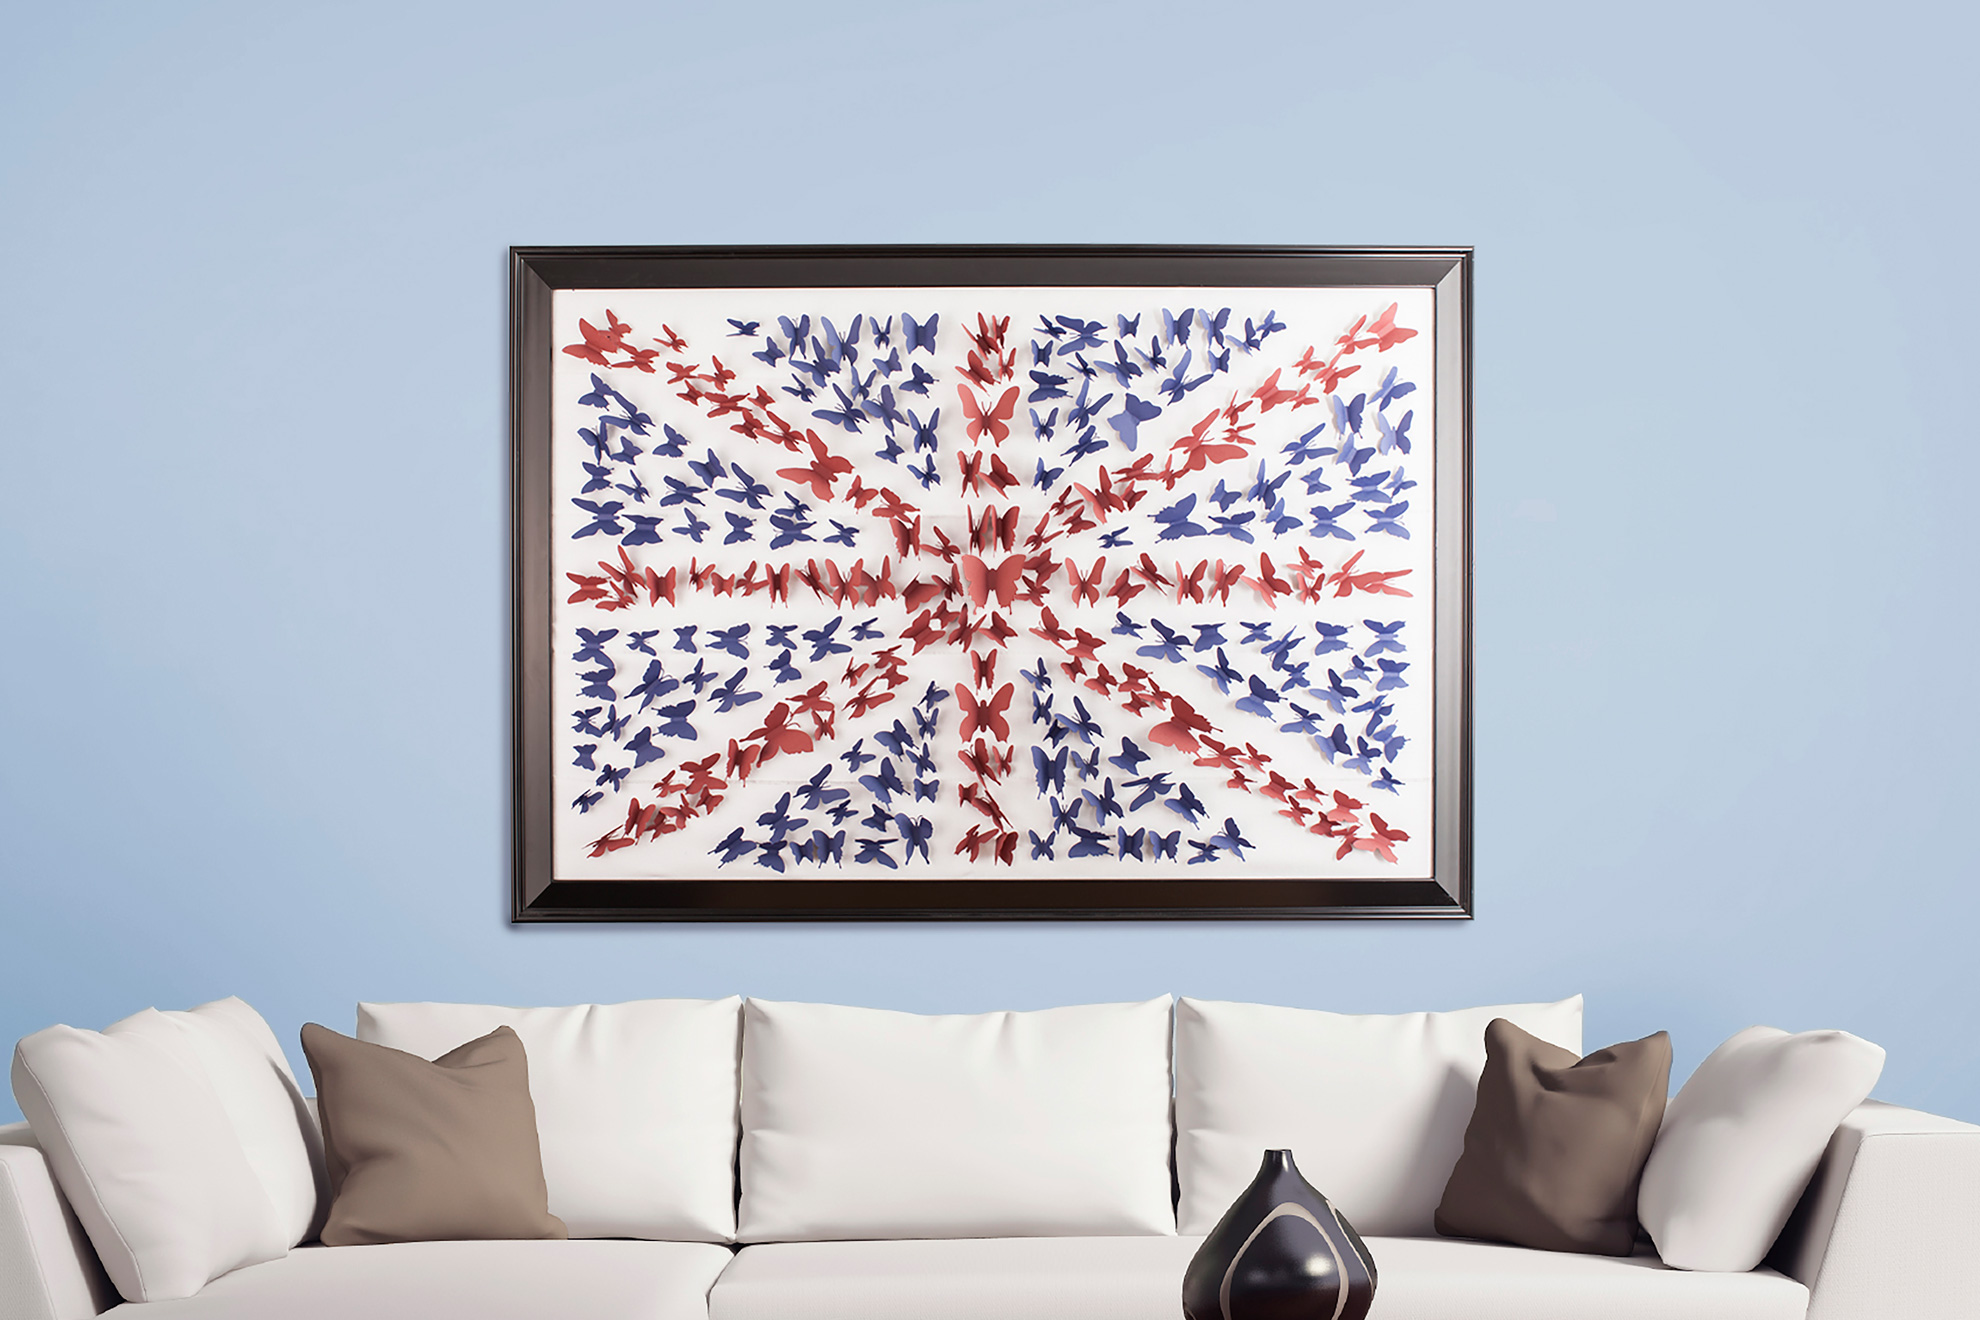 British flag wall art made out of paper butterflies